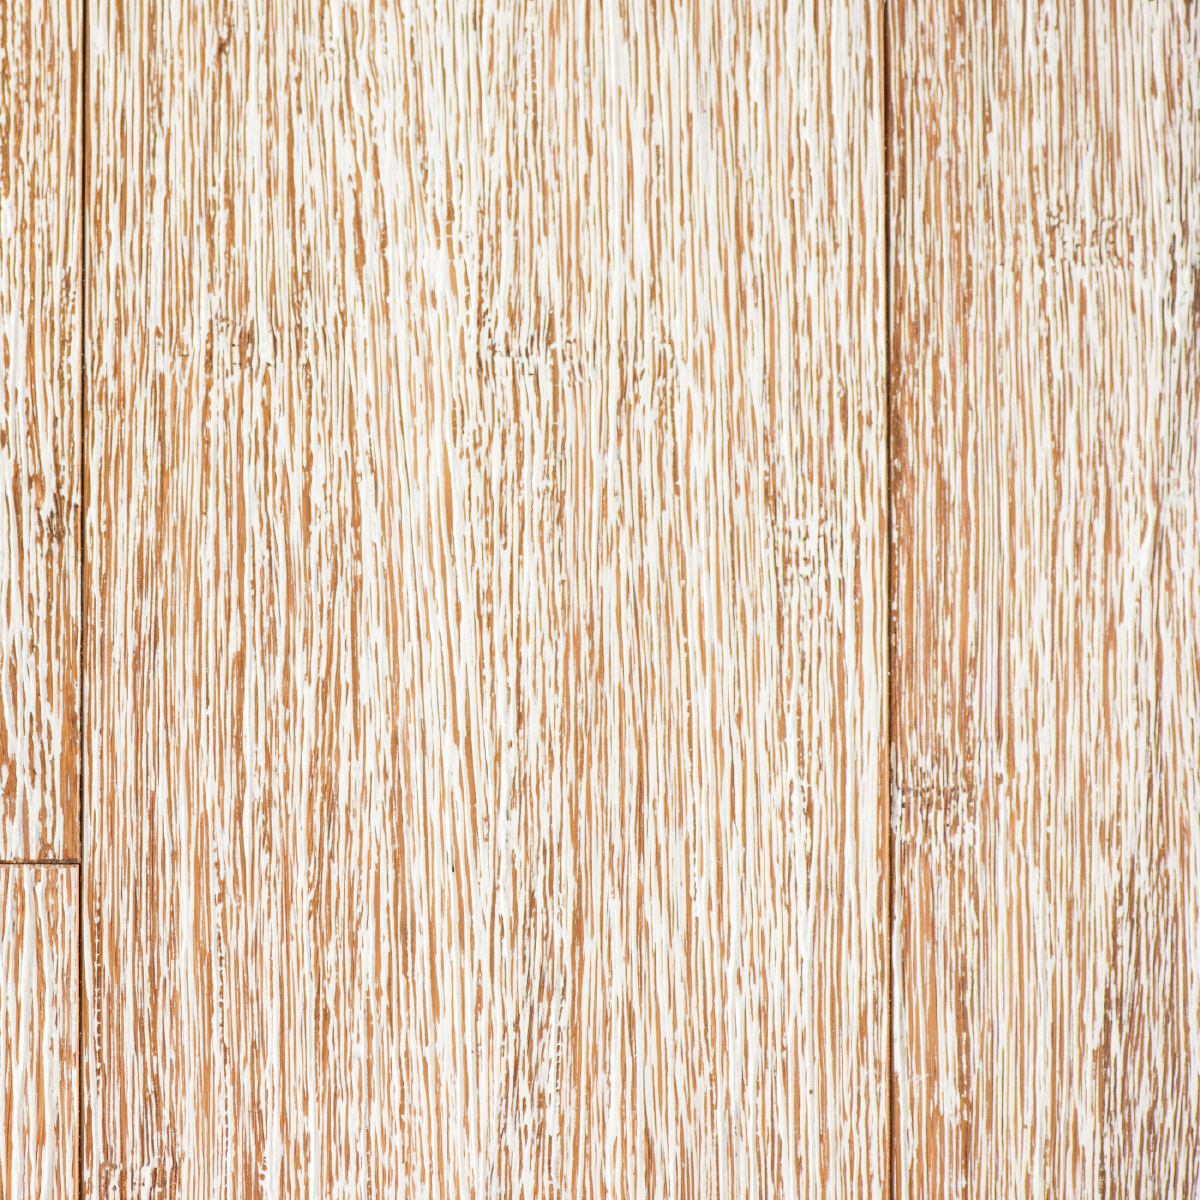 SQwire-strand-bamboo-01.png